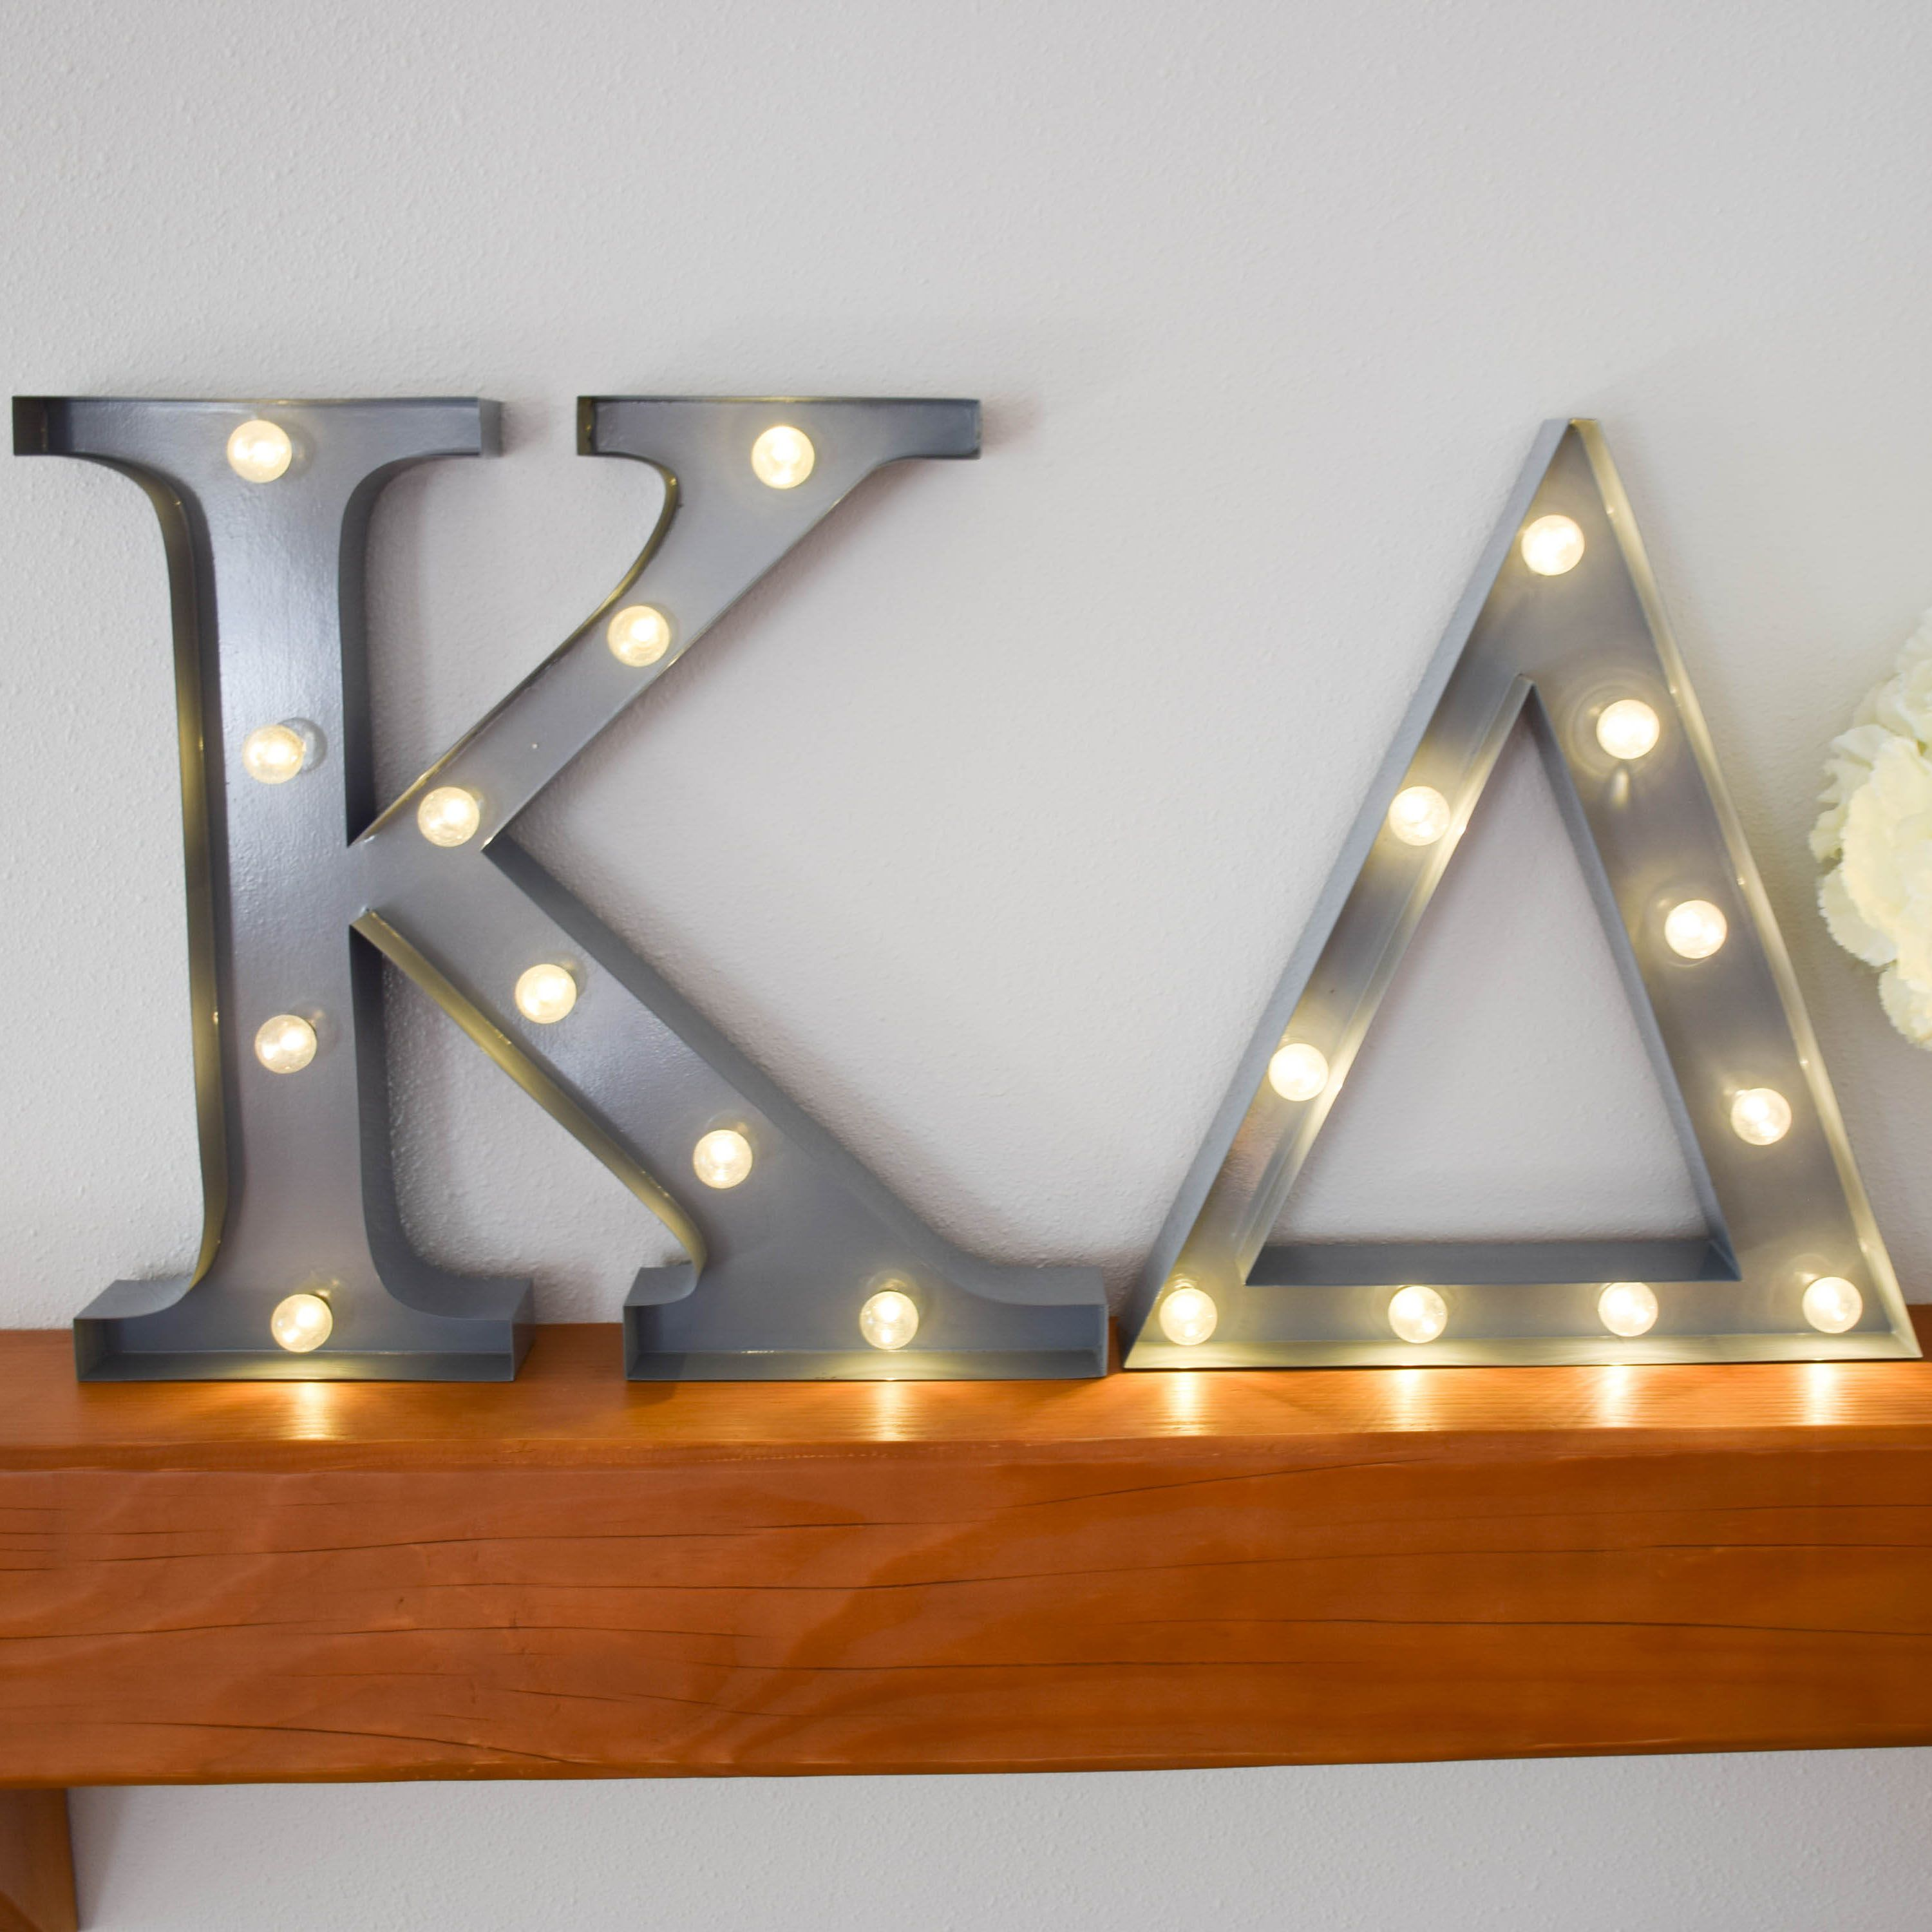 marquee gallery pretty props shop lighting the lights rusted wedding heart light prop lit nz letter